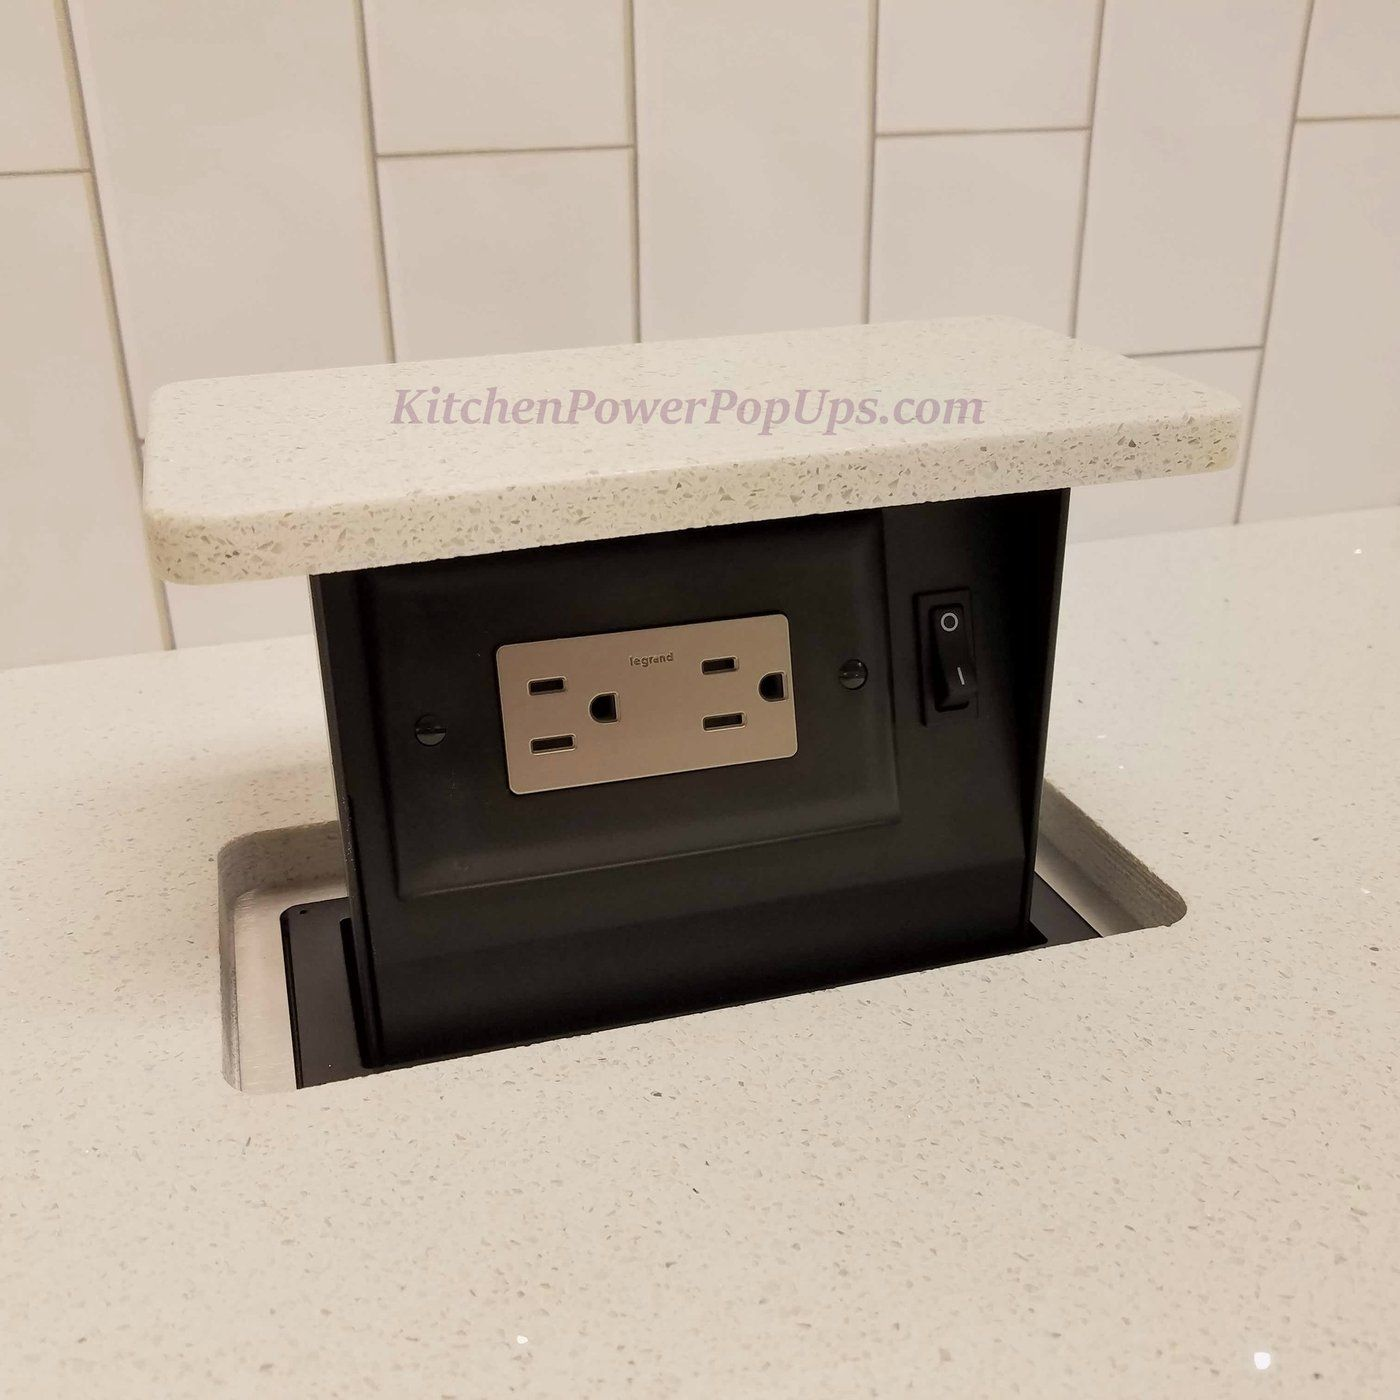 pop up outlets for kitchen sink hole cover countertop hidden 2 power use your stone